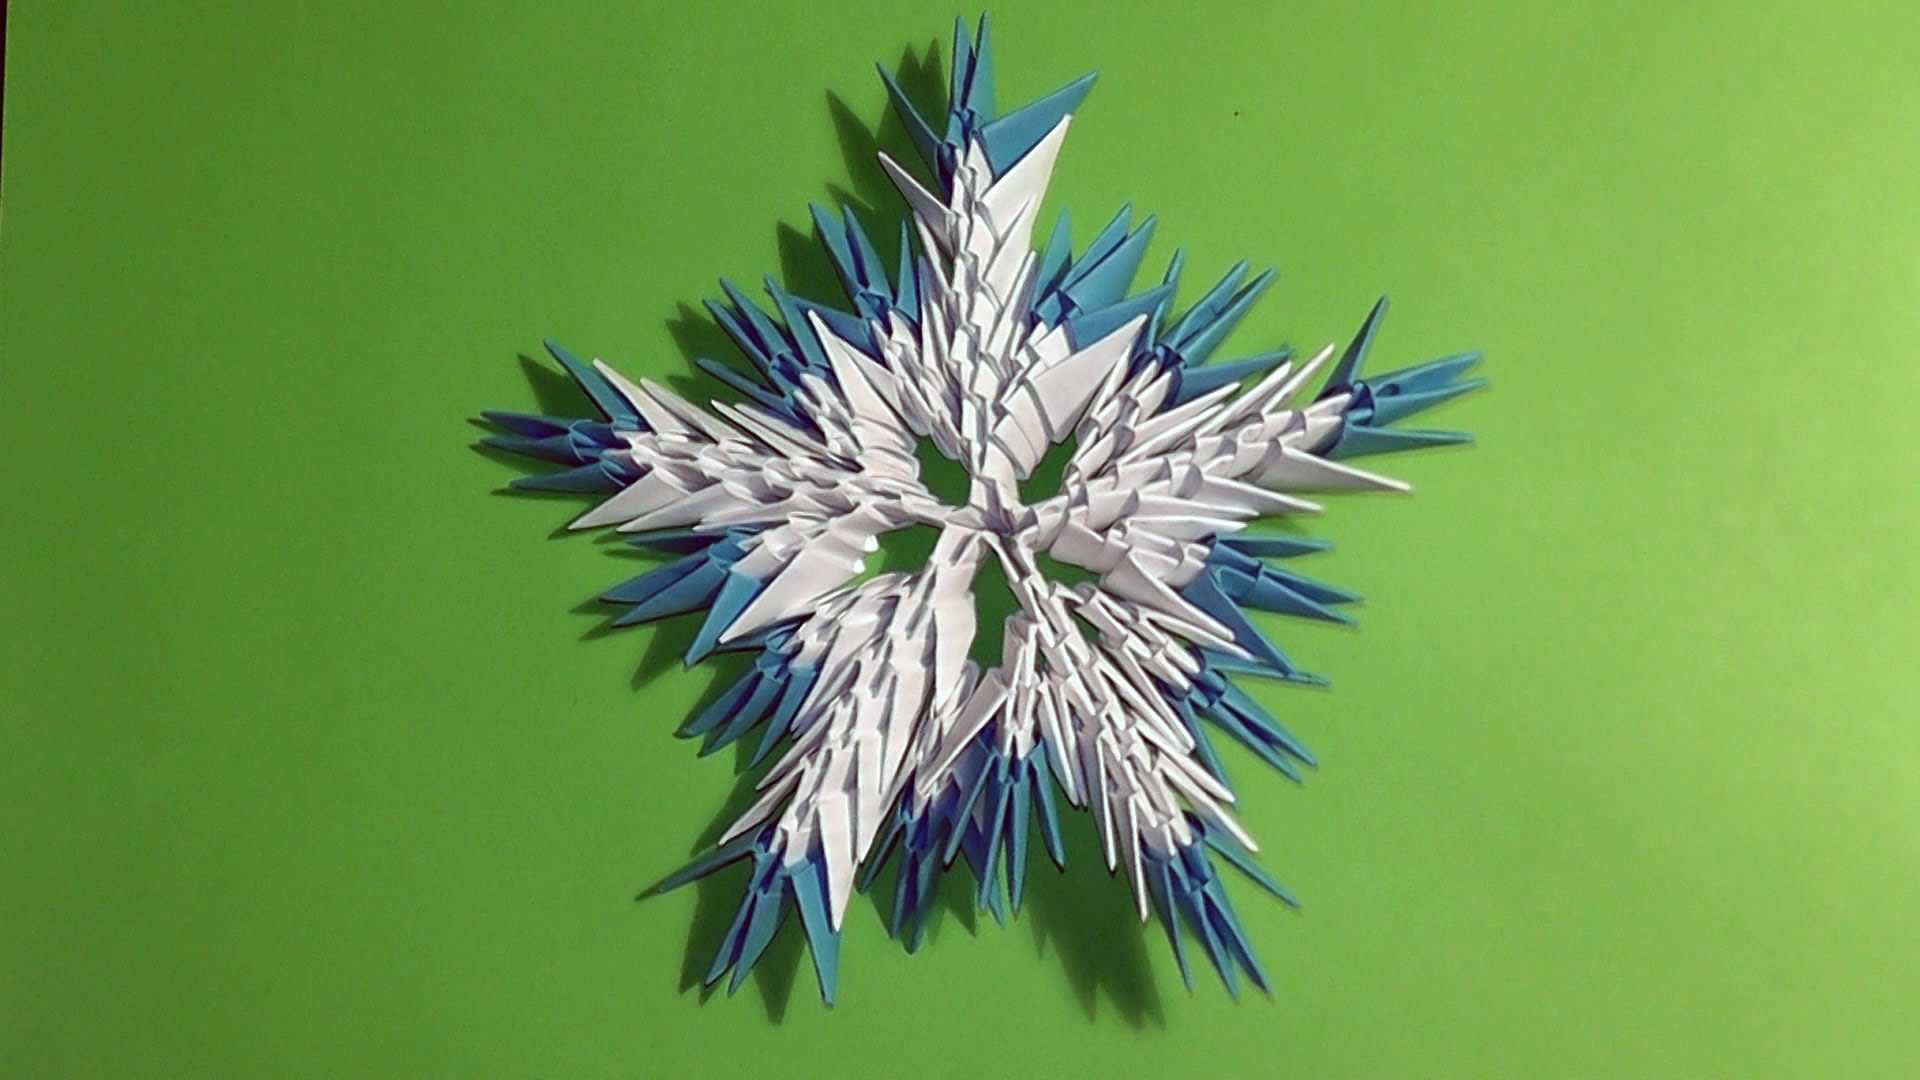 3d paper snowflake You can start by squaring off regular old pieces of 8x10 printer paper if you want  however, the finished snowflake is almost 2 feet across, so feel free to cut your squares a little smaller.